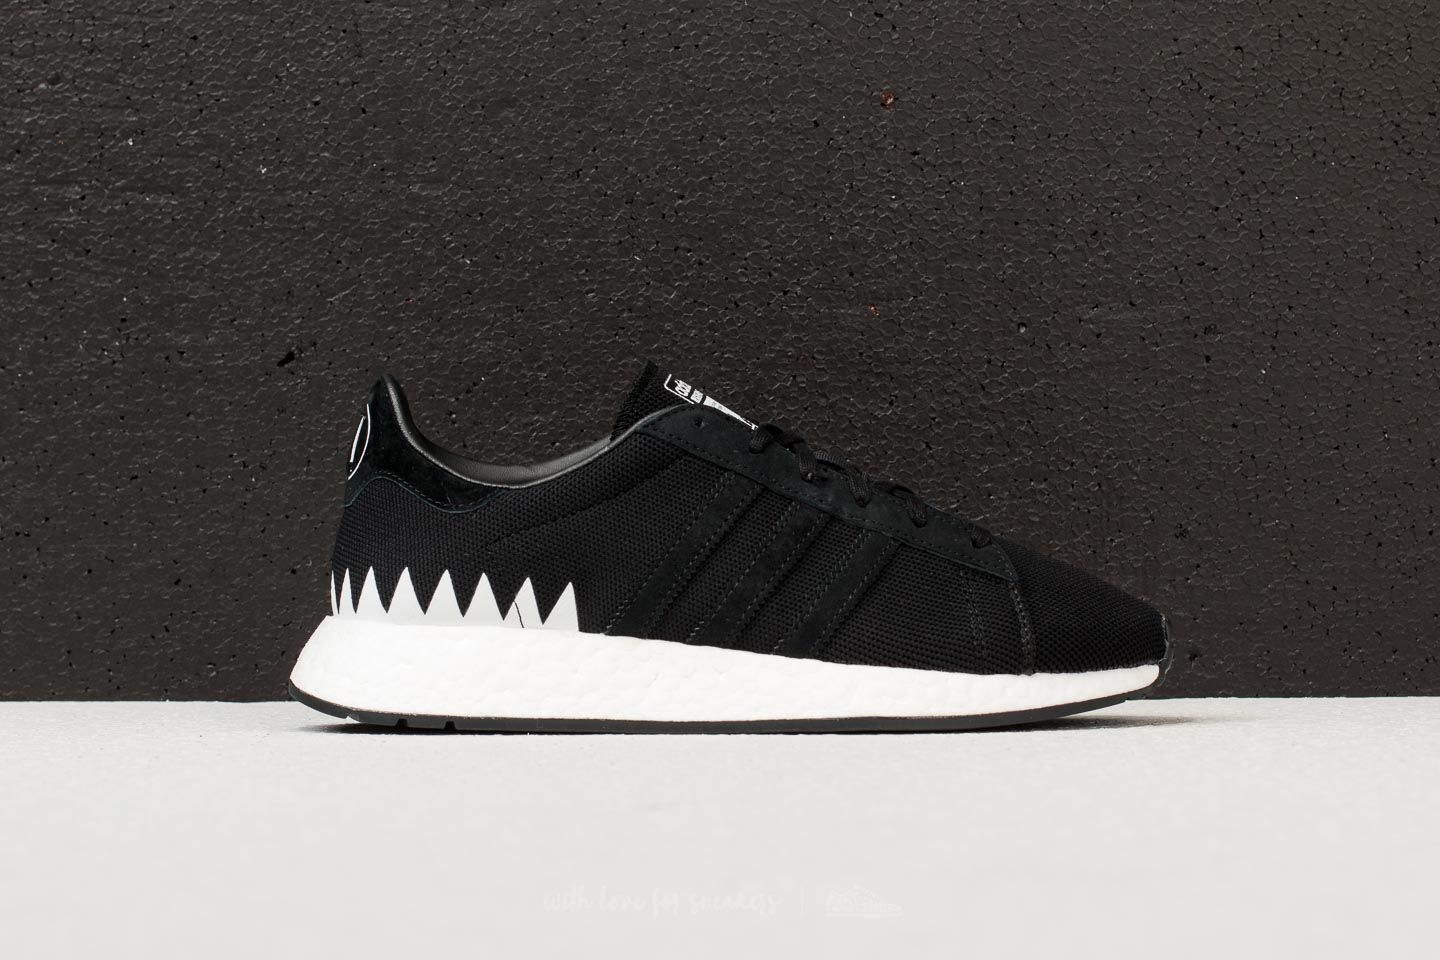 super popular 7d345 6b47c adidas x Neighborhood Chop Shop Core Black Core White at a great price 99 €